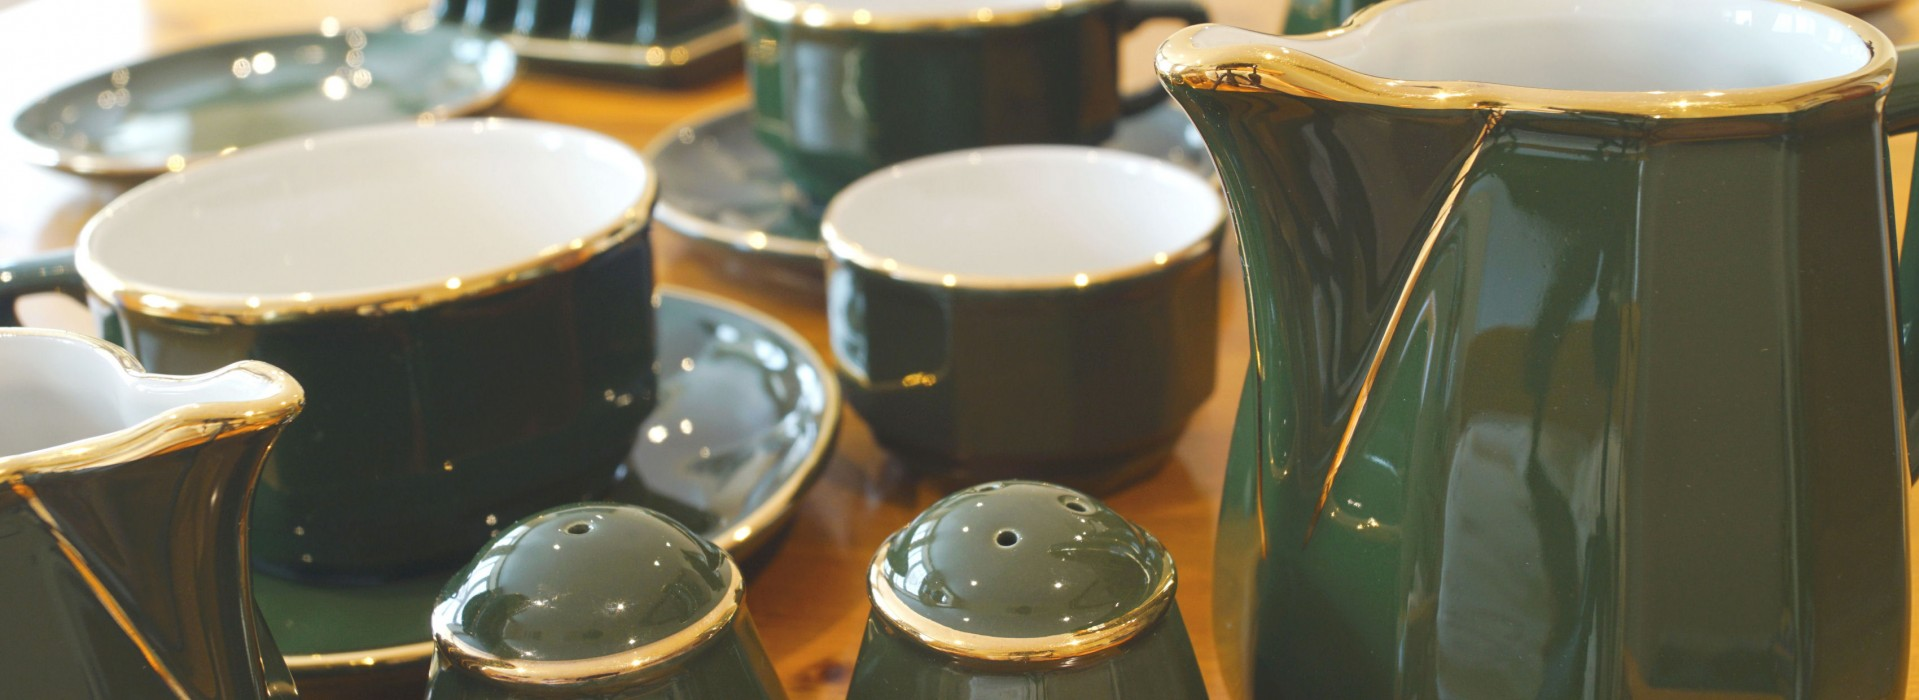 Nivag Crockery: Green and Gold Bistro